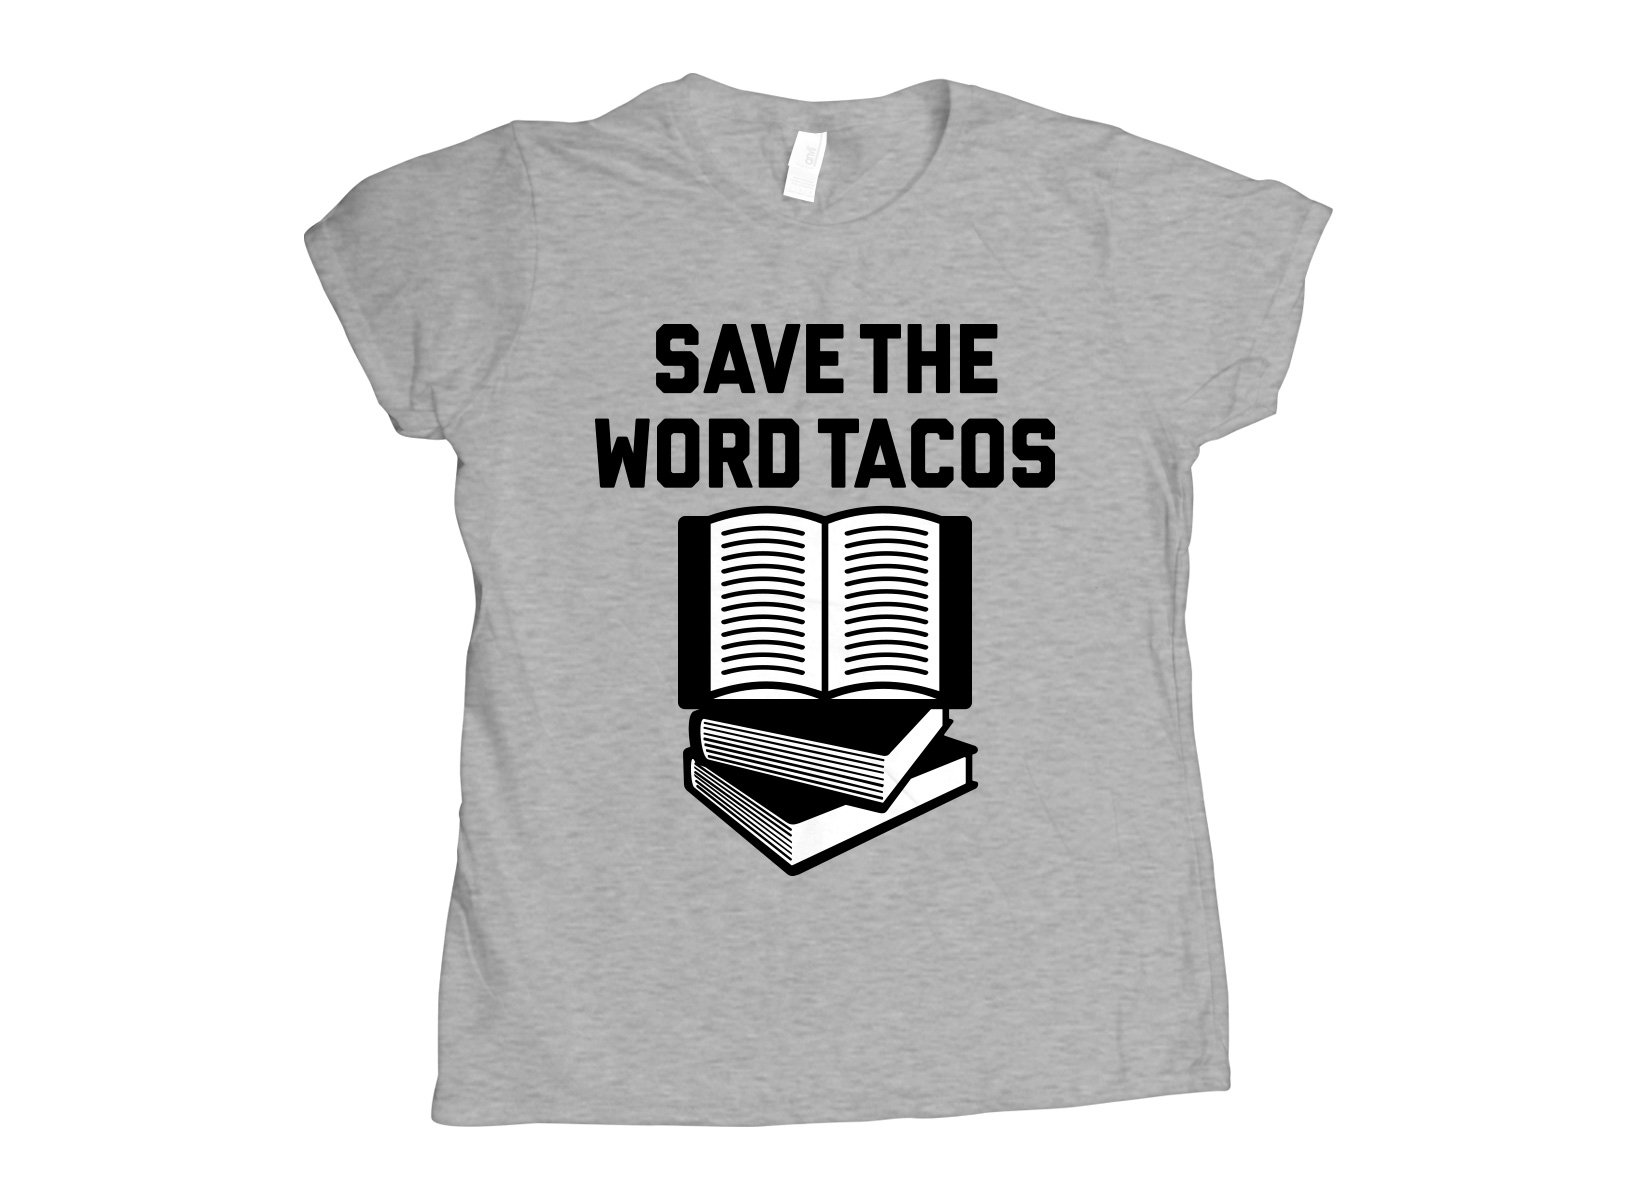 Save The Word Tacos on Womens T-Shirt